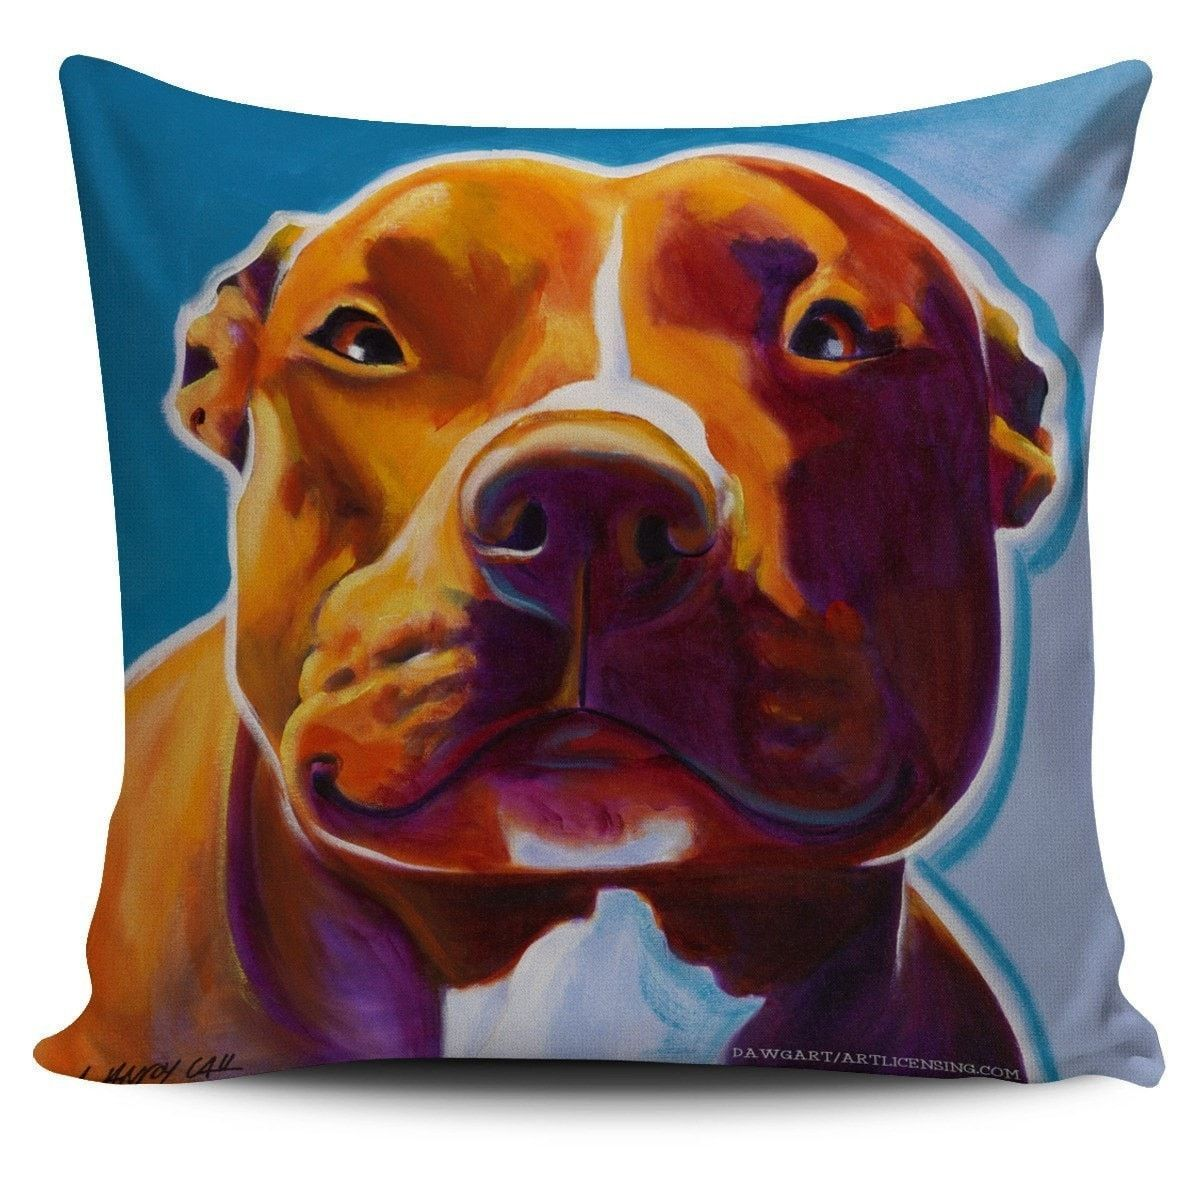 Pillow Covers - Pit Bull Lovers Series